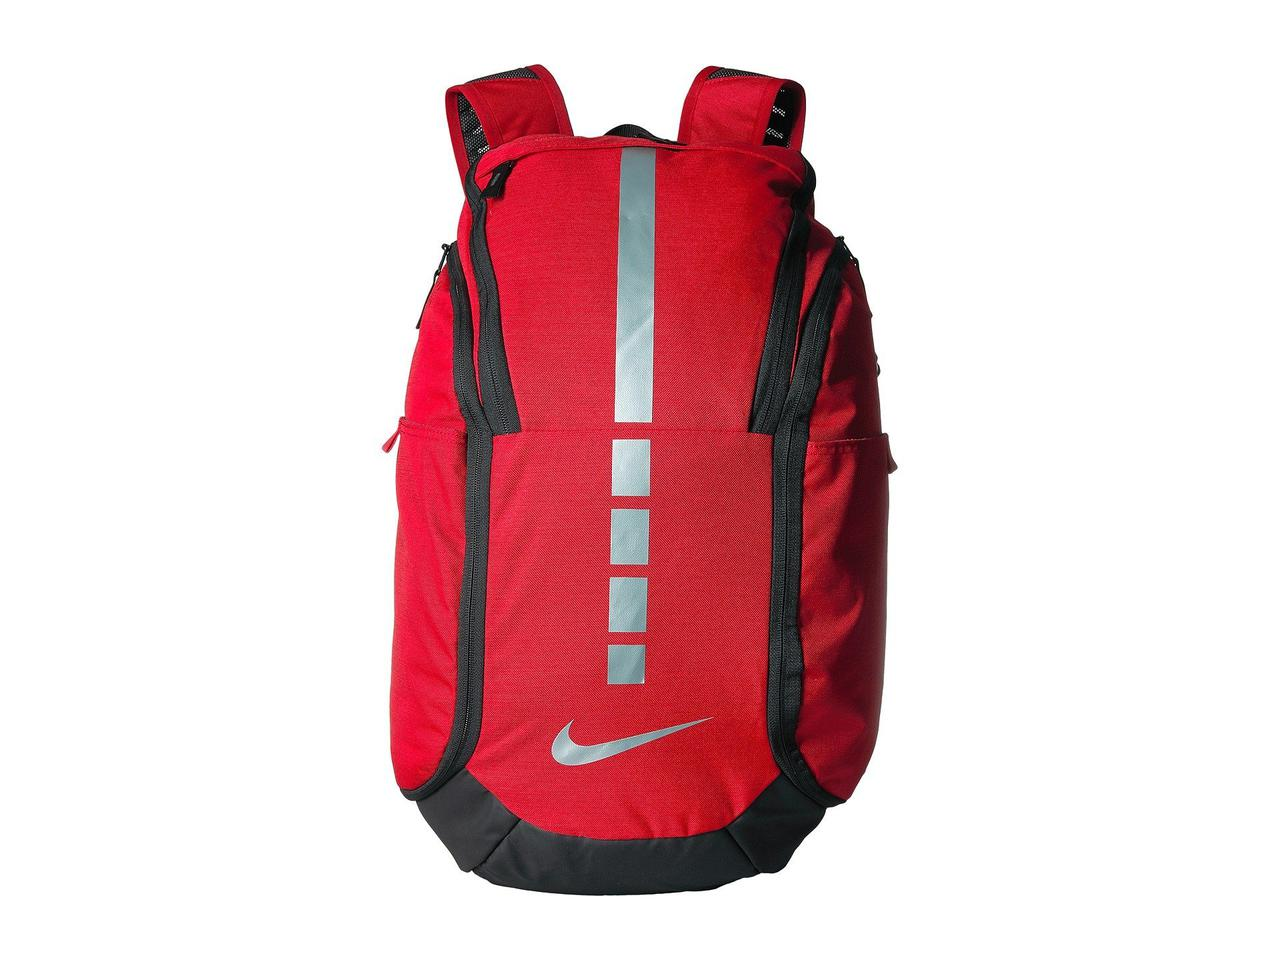 ac93f0393879bb Nike Elite Backpack Black And Red   Building Materials Bargain Center